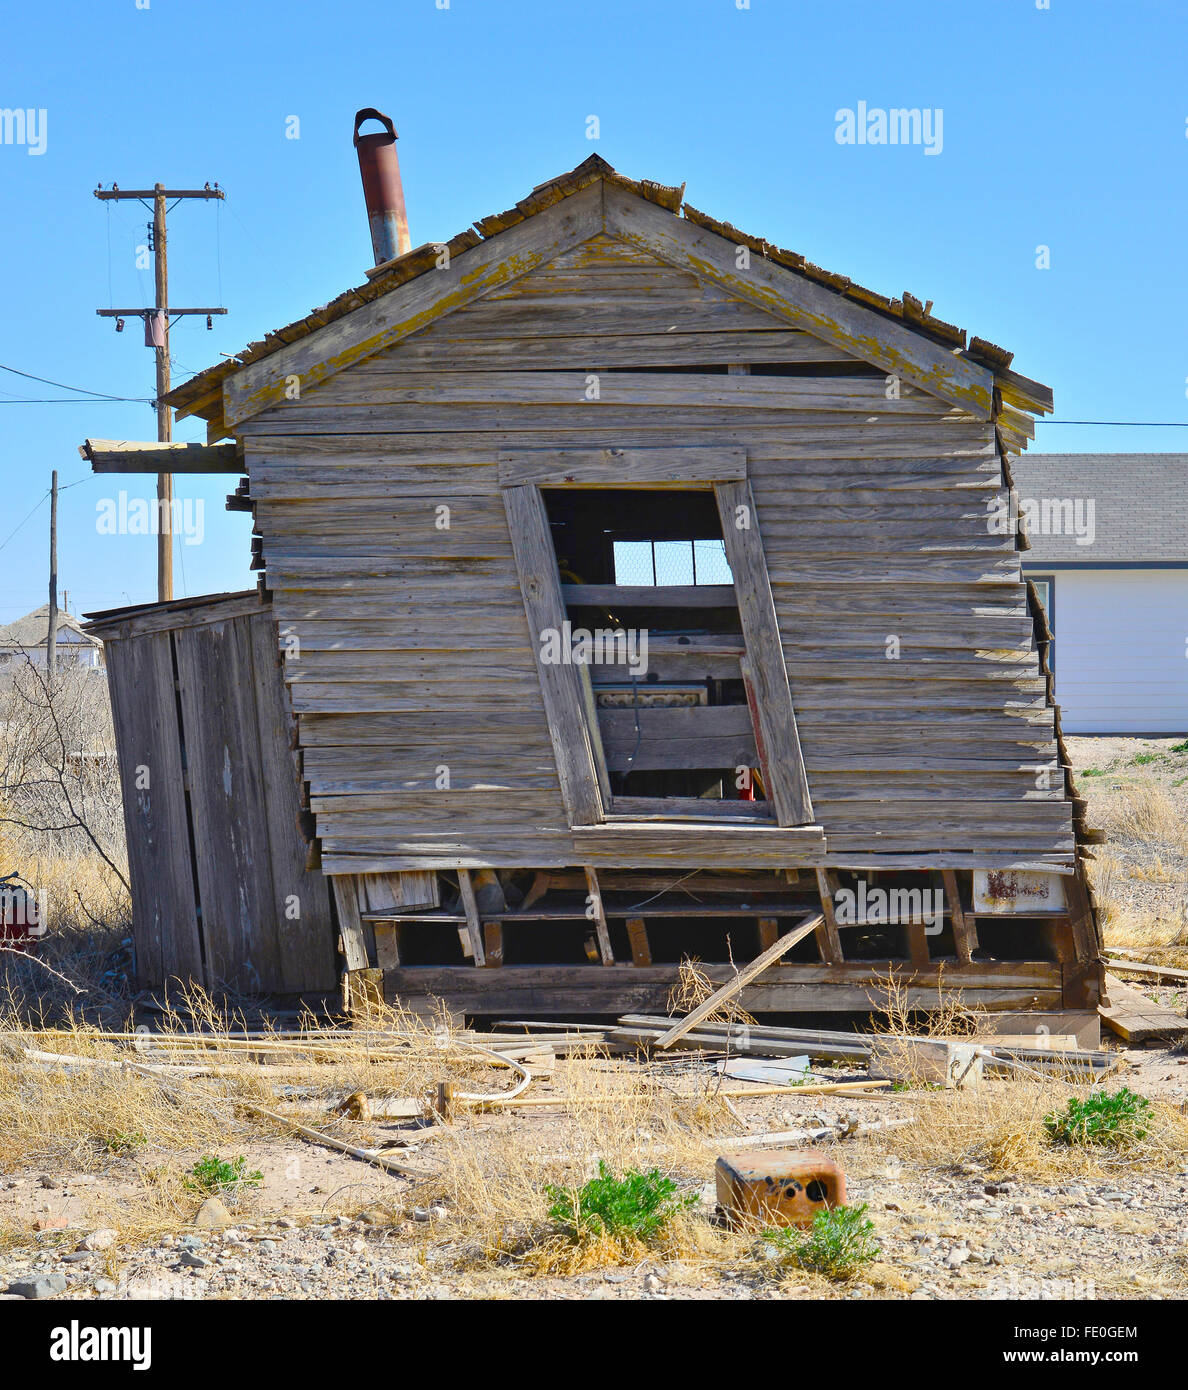 old collapsing leaning shed stock photo 94669980 alamy